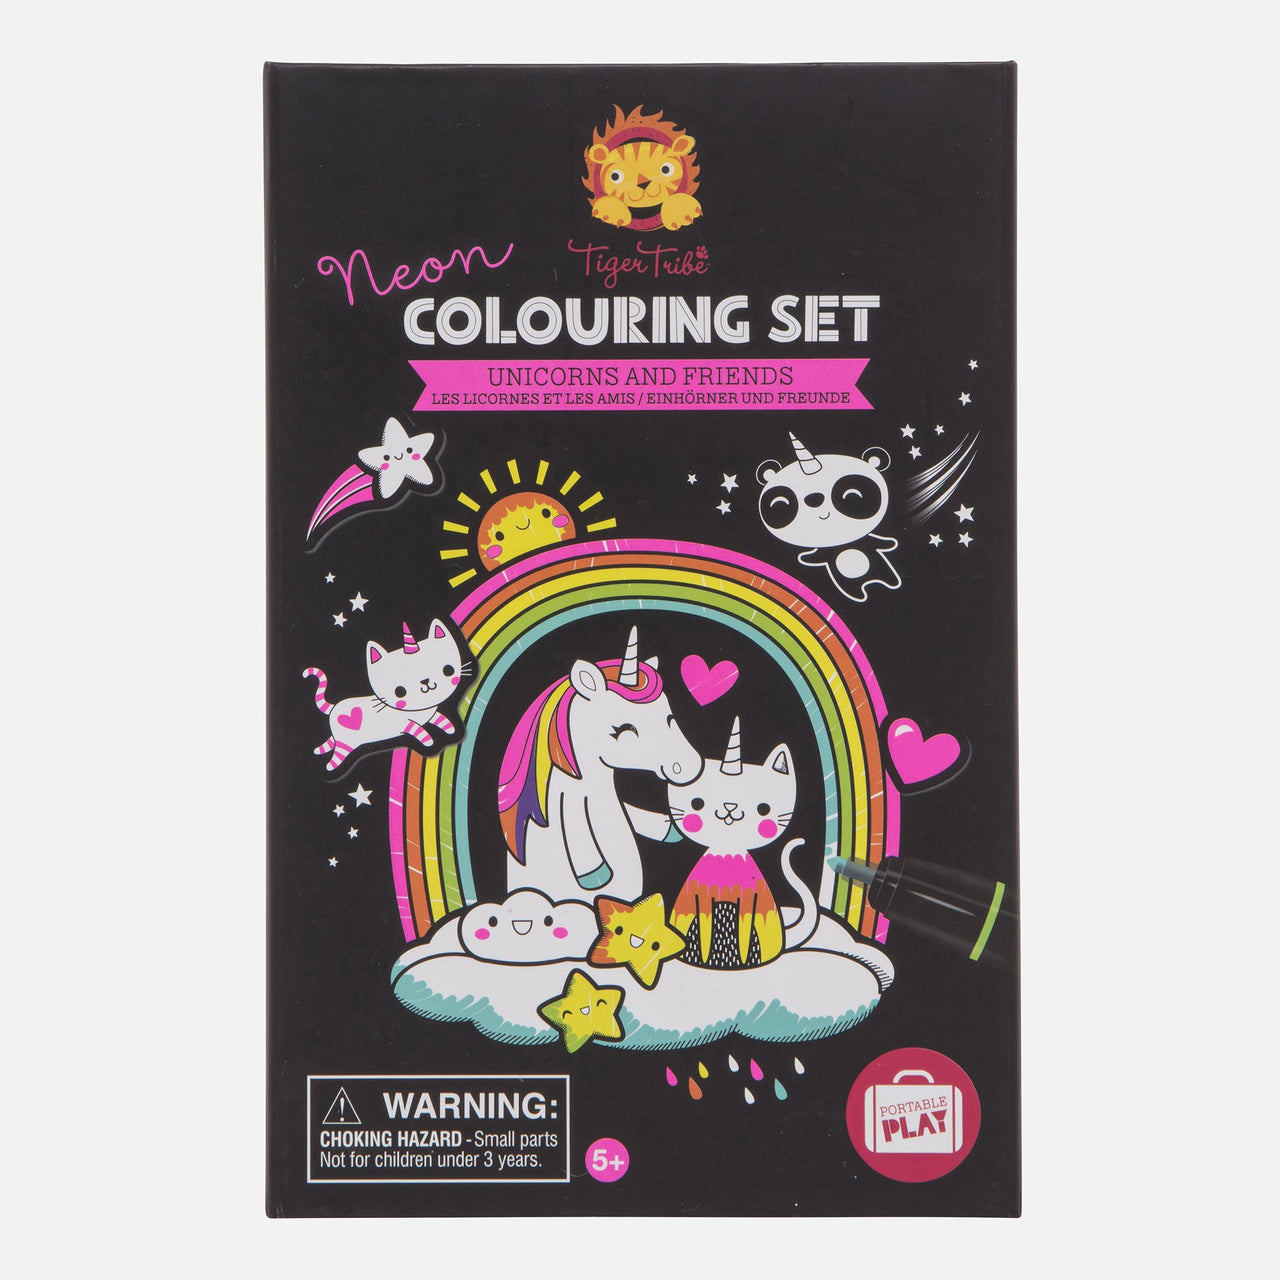 Neon Colouring Set - Unicorns and Friends